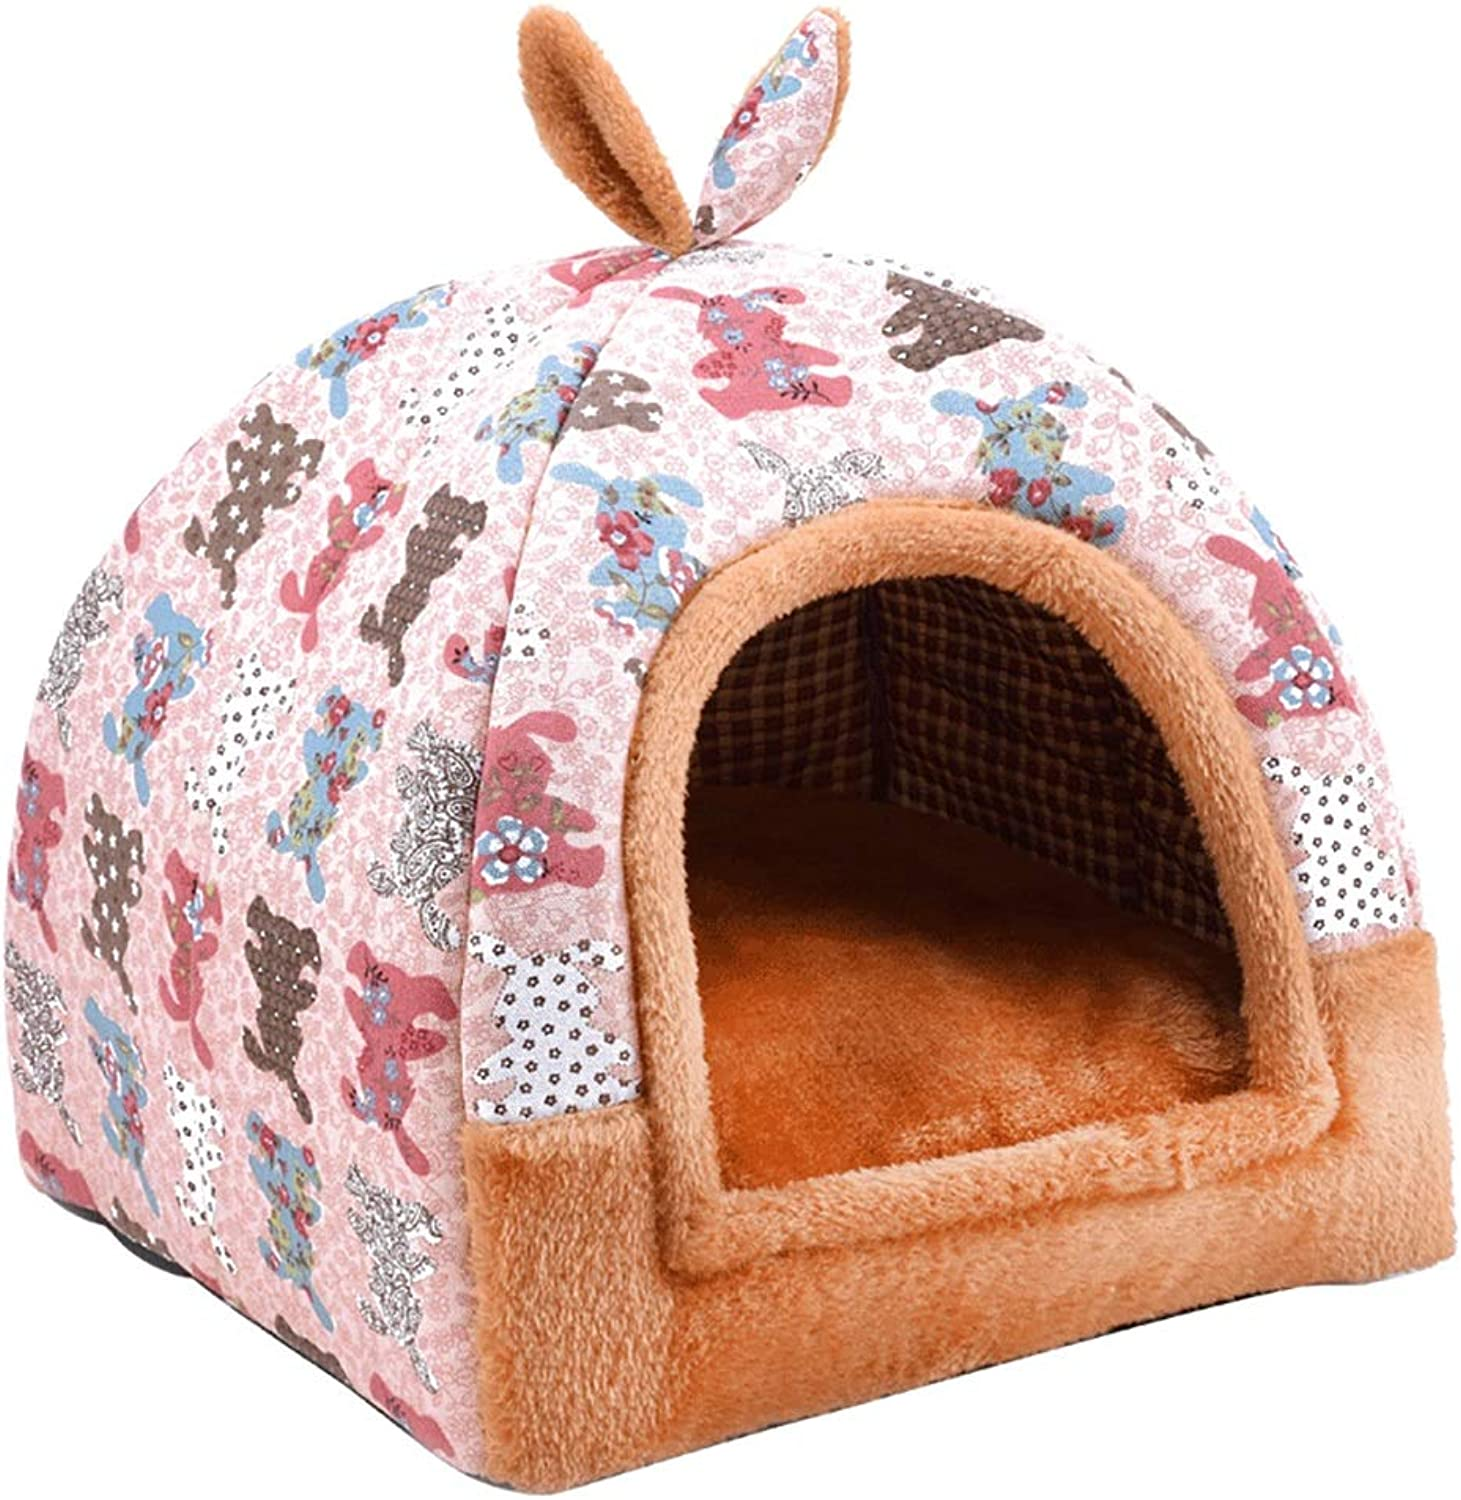 Pet house Cat nest kennel Small dog Closed type pet nest Pet mat Pet bed Warm cosy Two usage Four seasons available (color   A, Size   42  42  43)